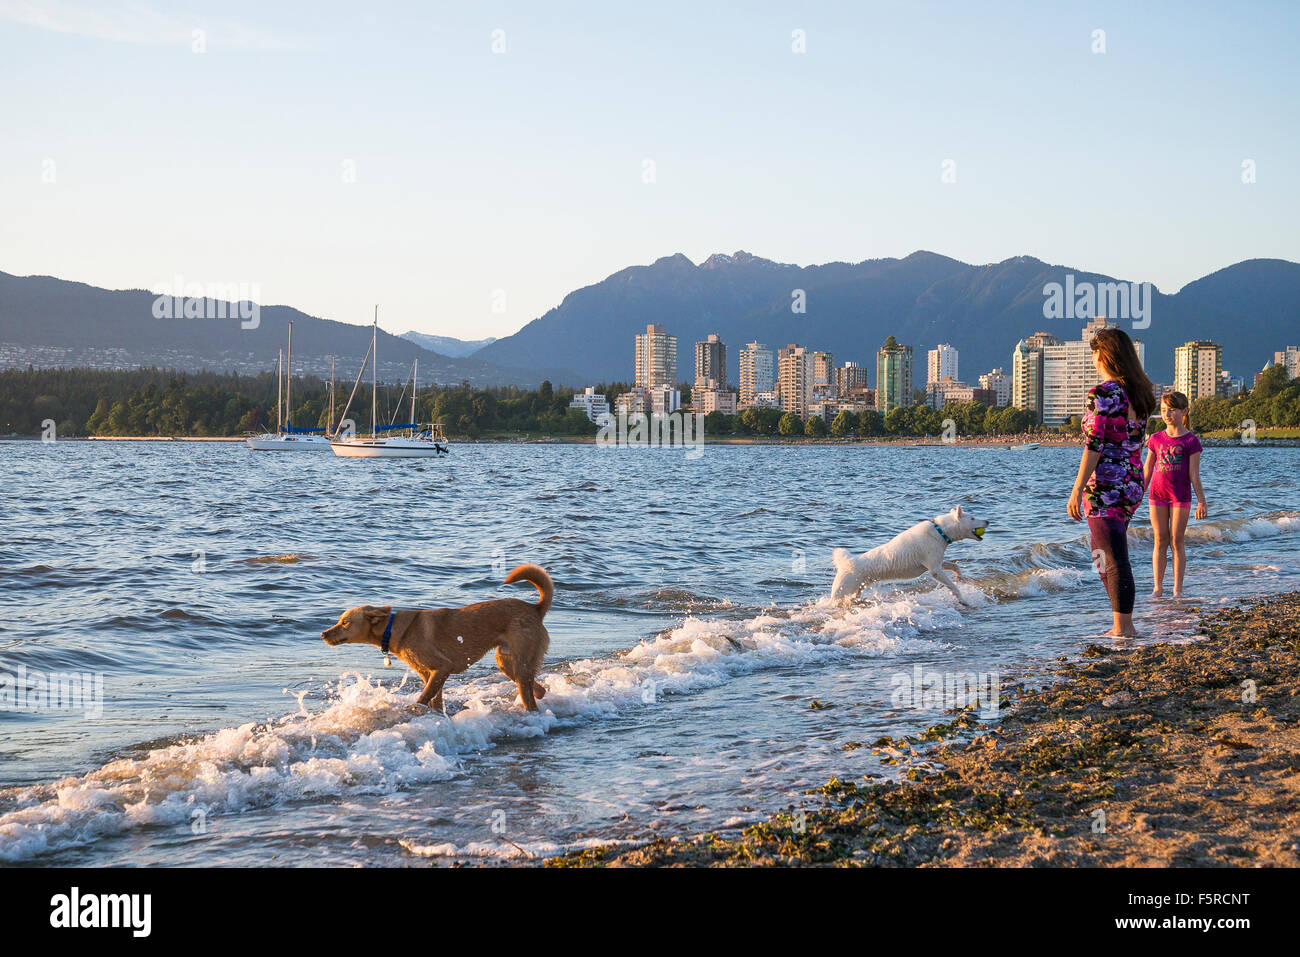 Hadden Park beach a legal dog off-leash area, Vancouver, British Columbia, Canada - Stock Image